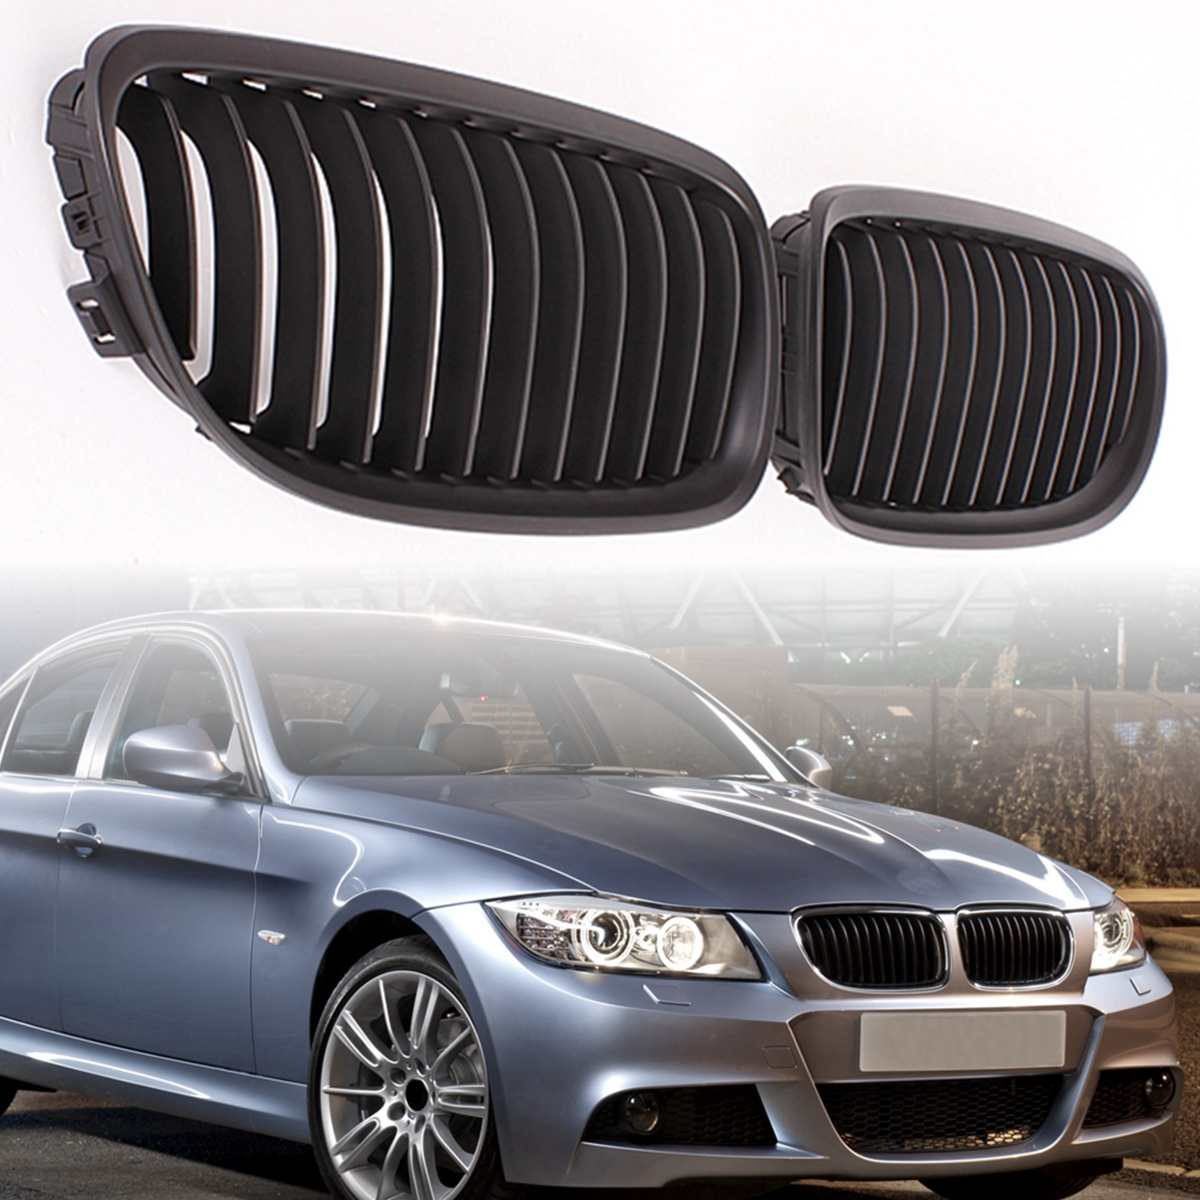 Replacement for E90 09-11 Left//Right Side Car Foglight Grille Cover 51117198902//51117198901